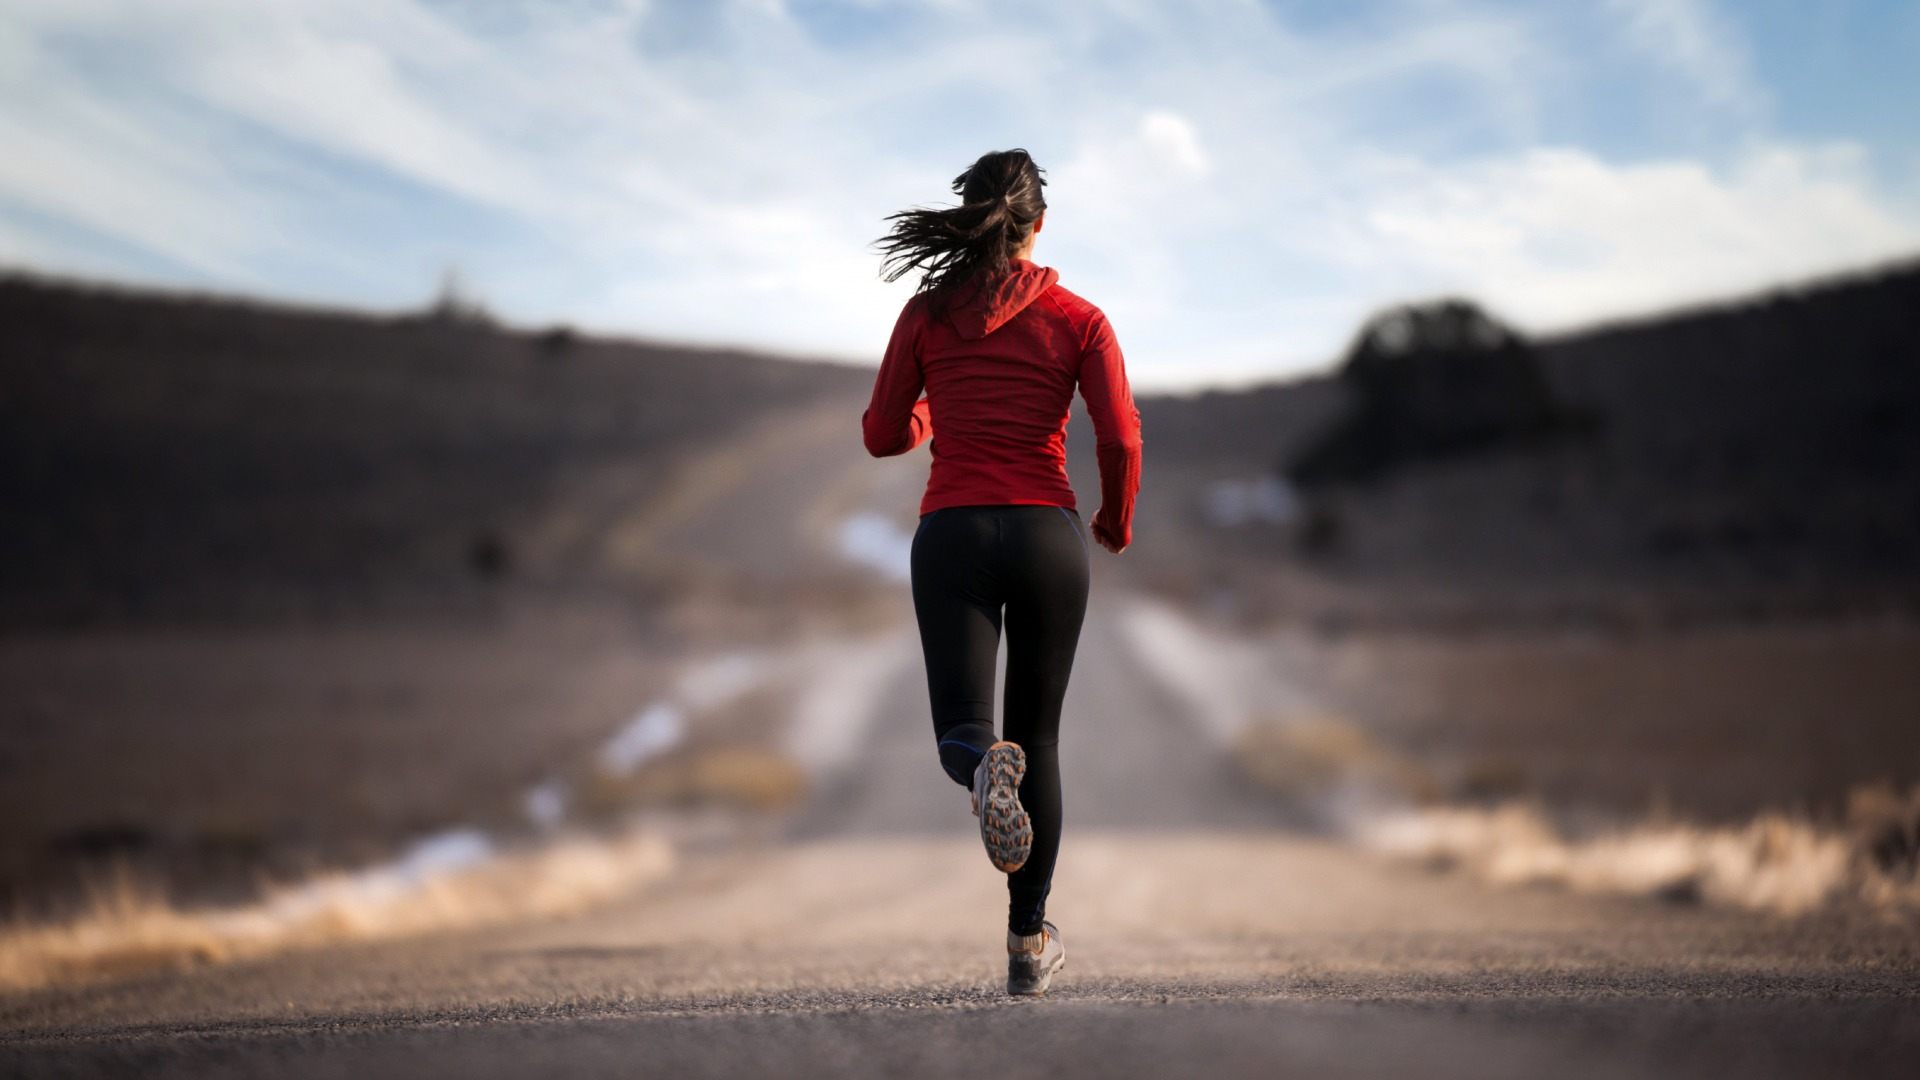 Jogging Wallpaper  Free wallpaper download 1920x1080